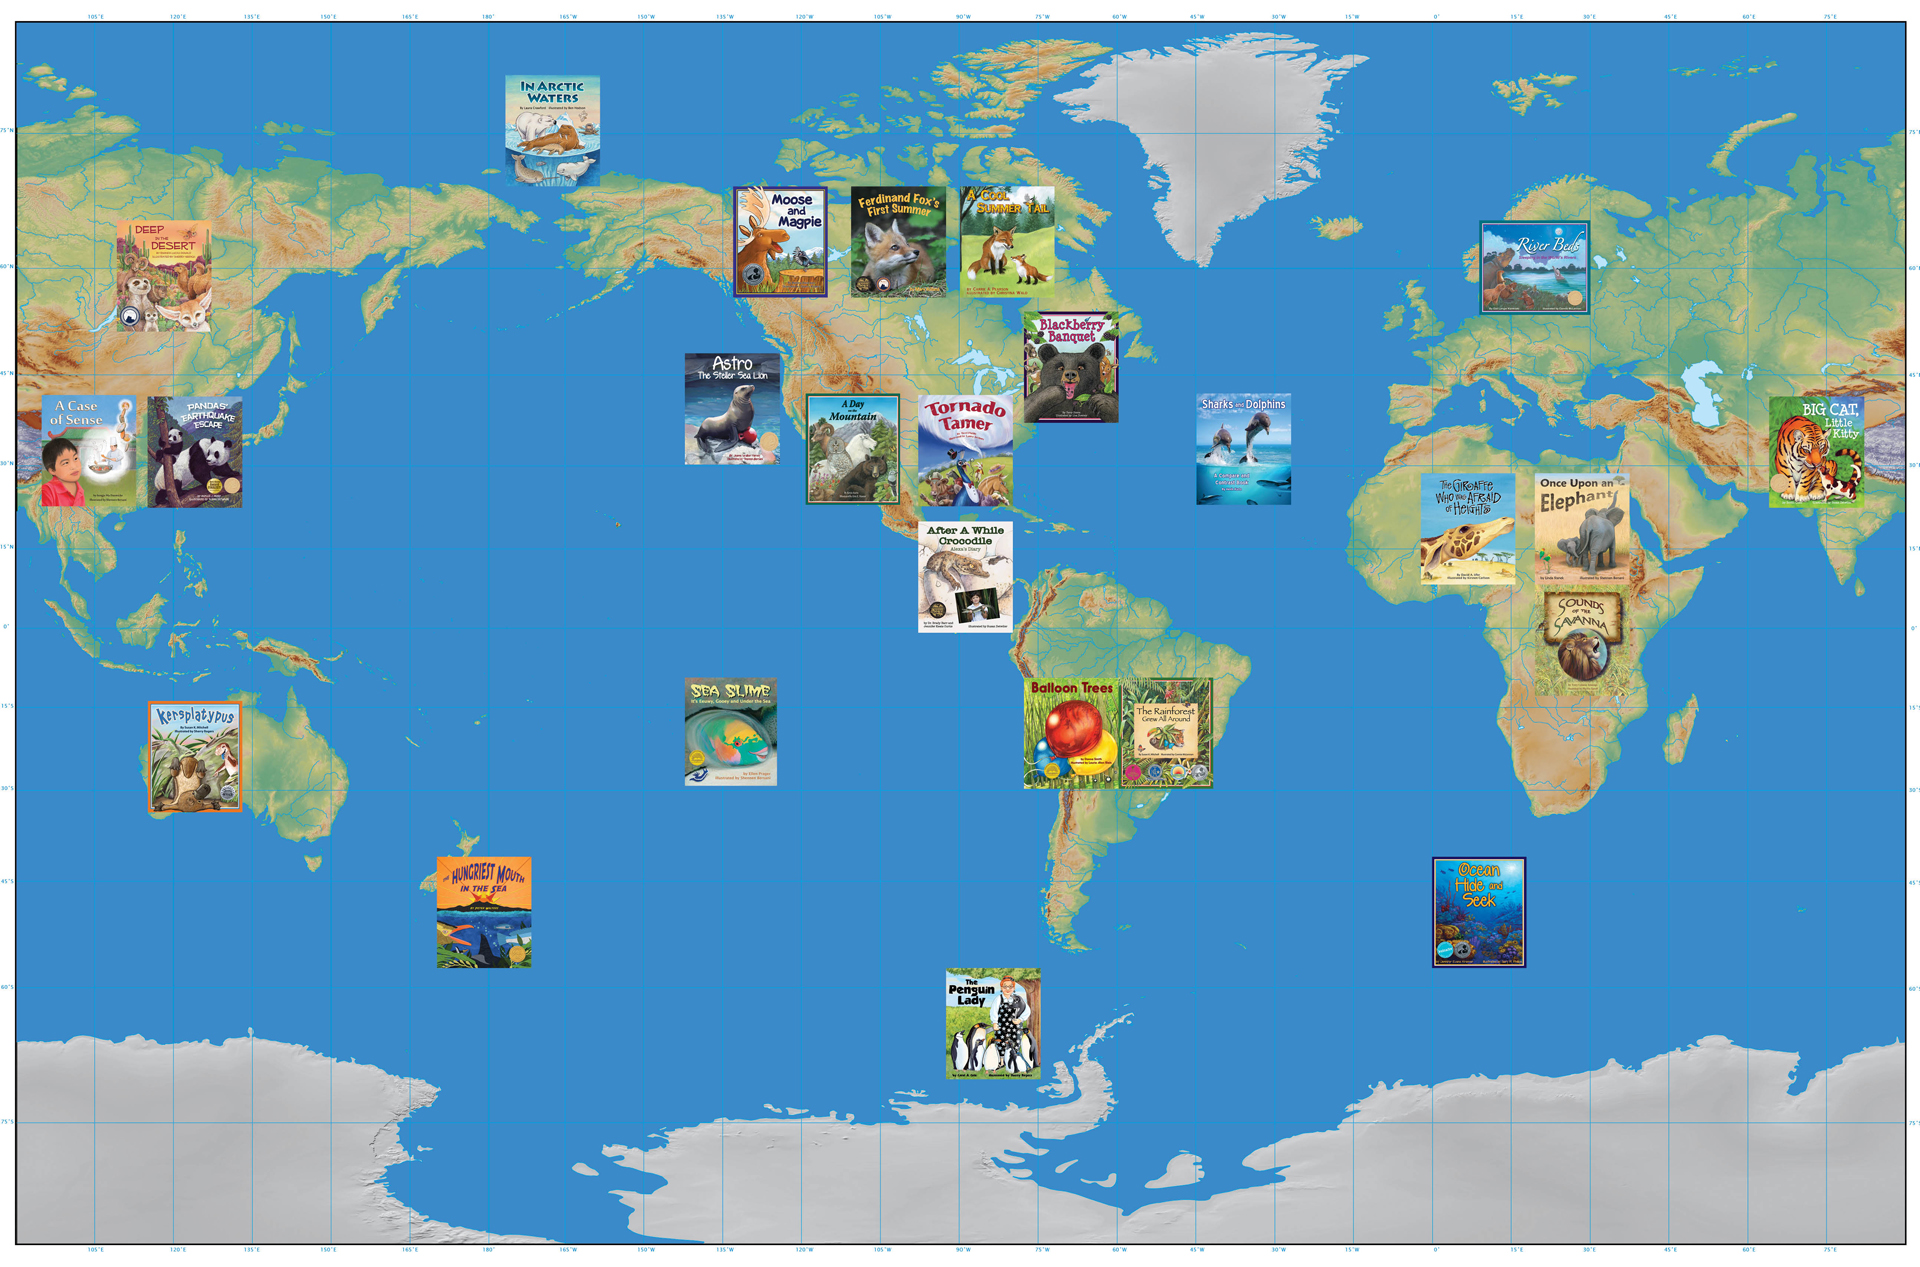 Arbordale Publishing - Interactive map for children